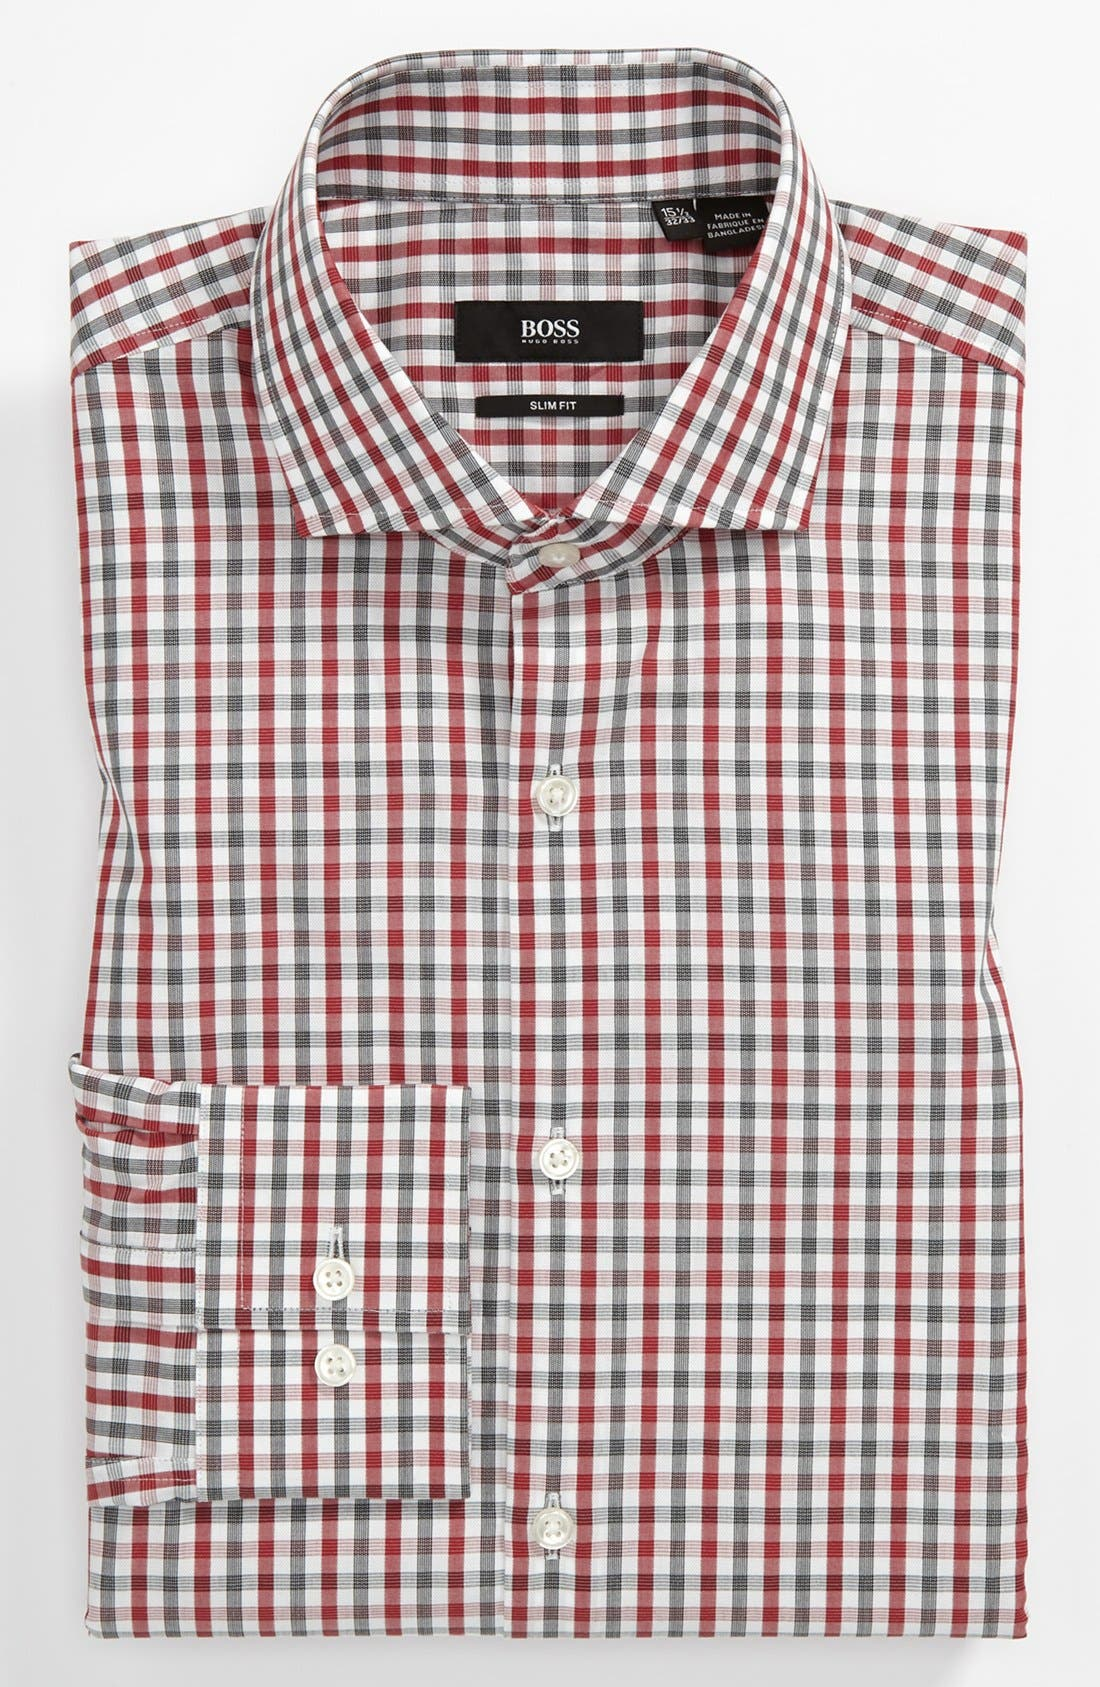 Main Image - BOSS HUGO BOSS 'Jason' Slim Fit Dress Shirt